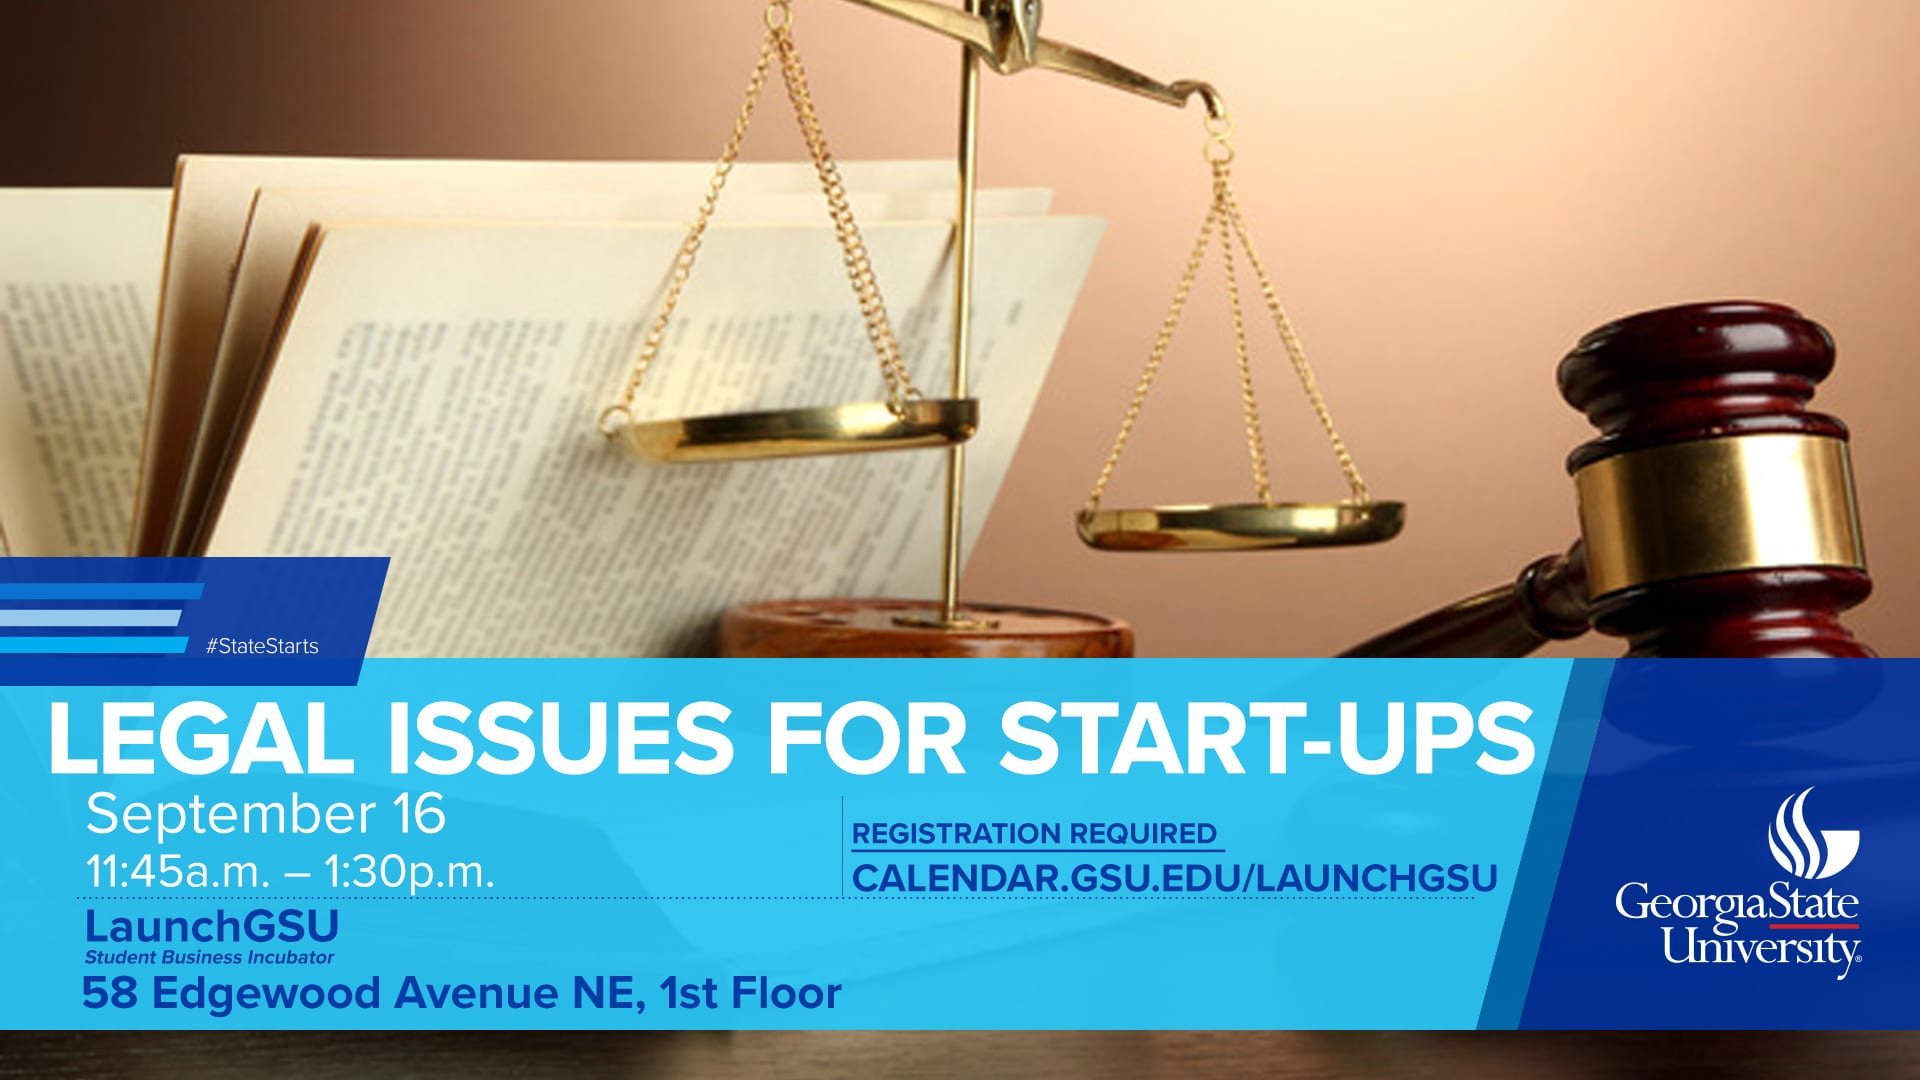 Flyer for Legal Issues for Startups Event